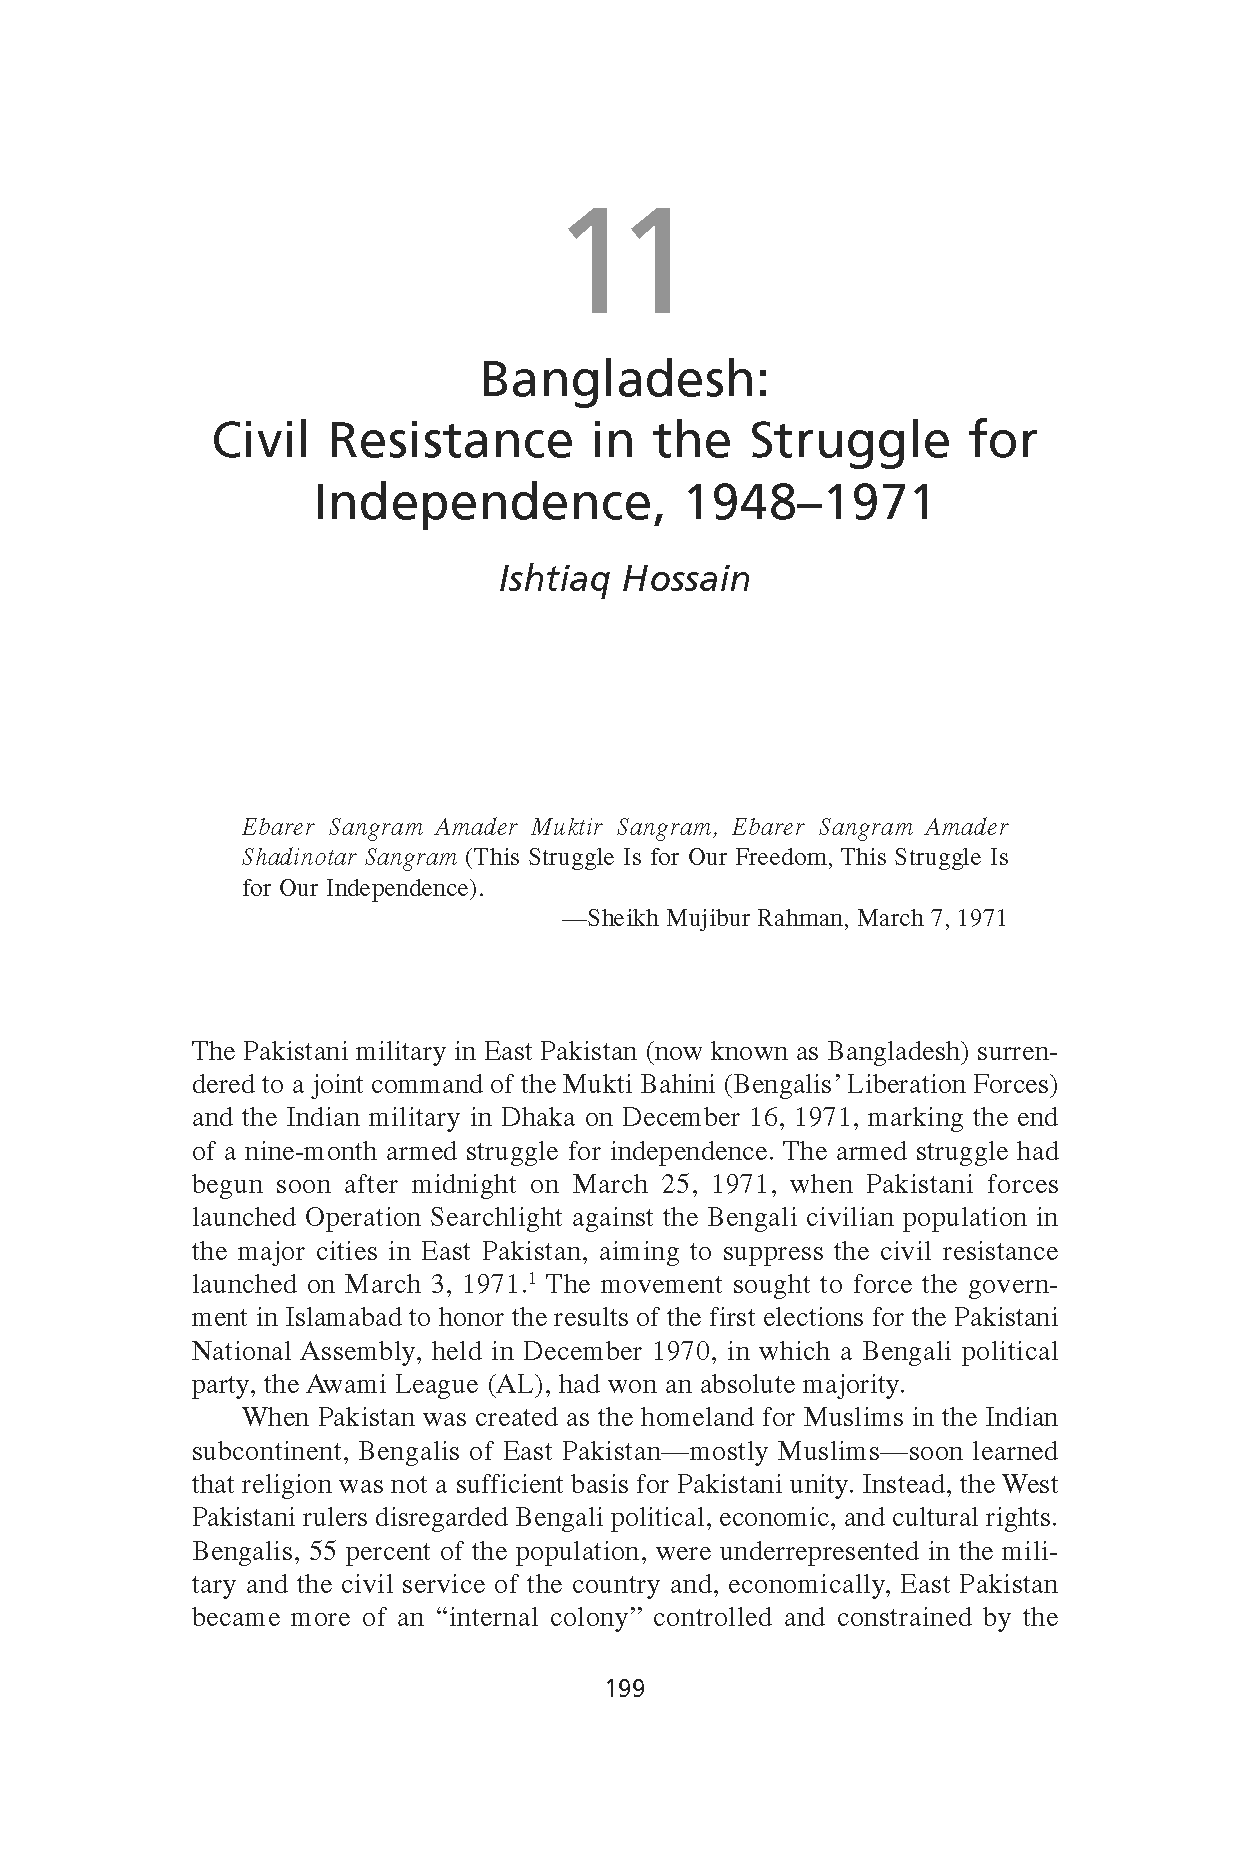 Bangladesh: Civil Resistance in the Struggle for Independence, 1948-1971 (Chapter 11 from 'Recovering Nonviolent History')